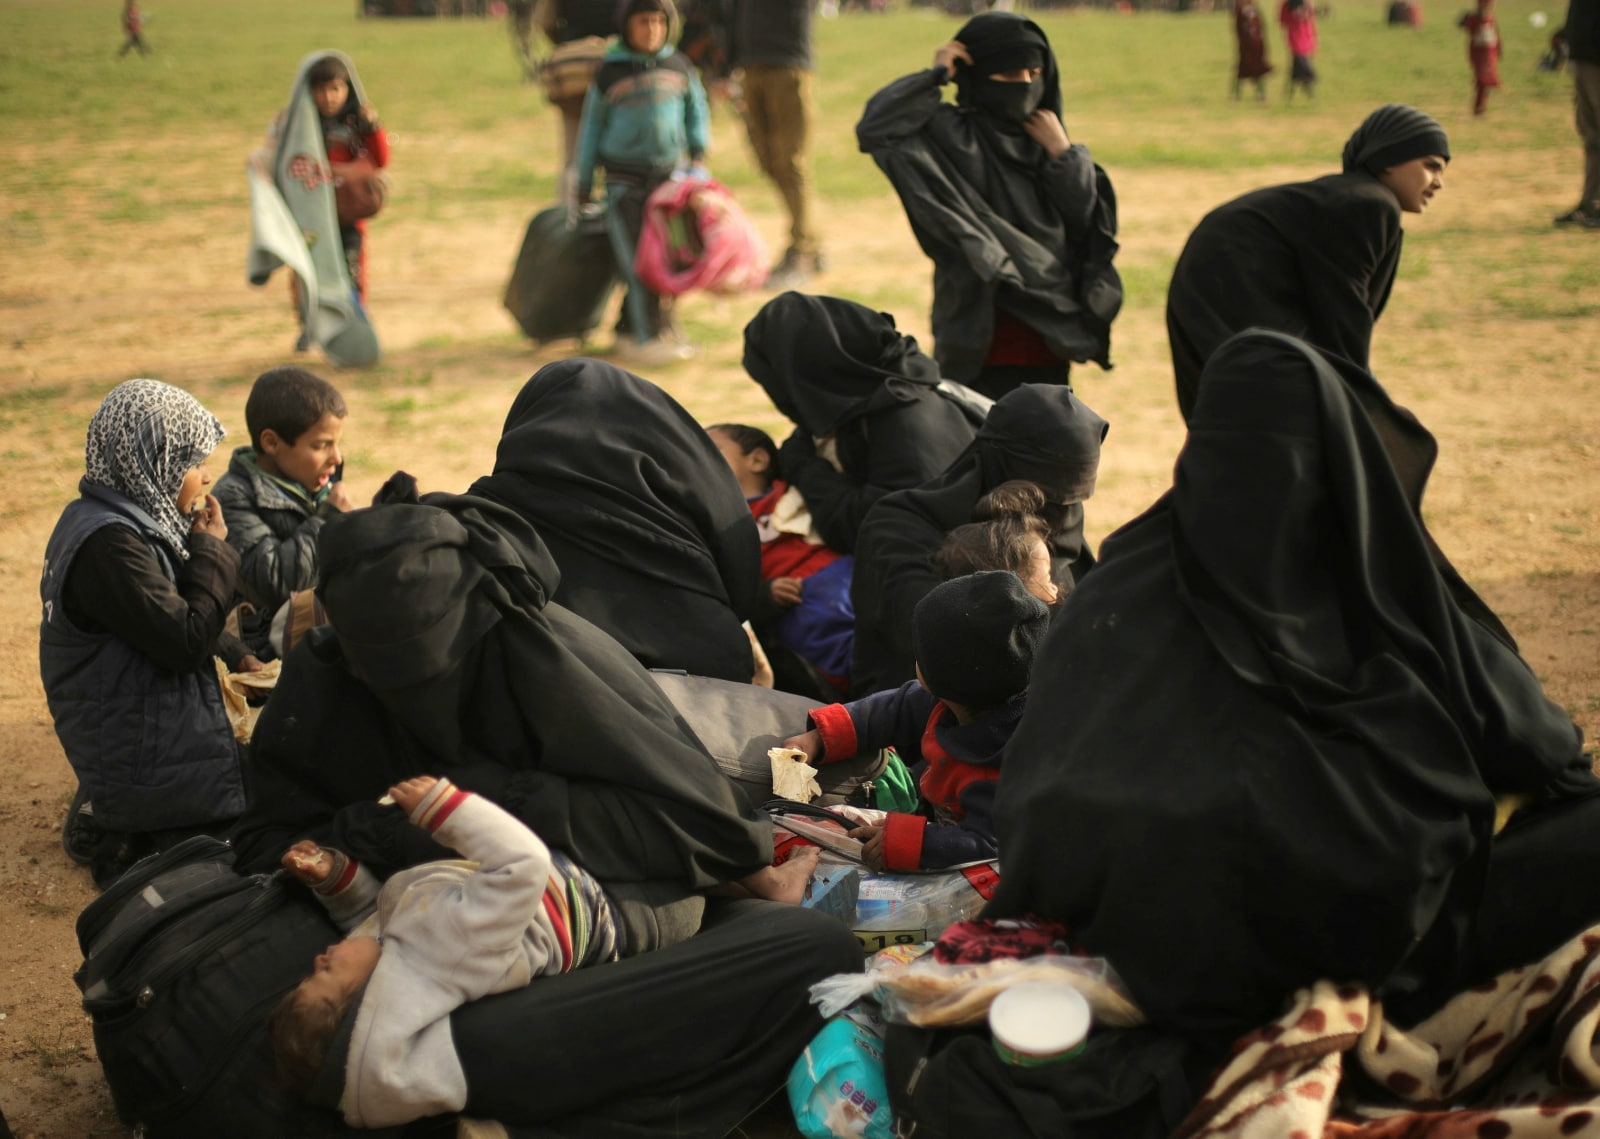 Women sit with their children near the village of Baghouz, Deir Al Zor province, Syria February 26, 2019. REUTERS/Rodi Said